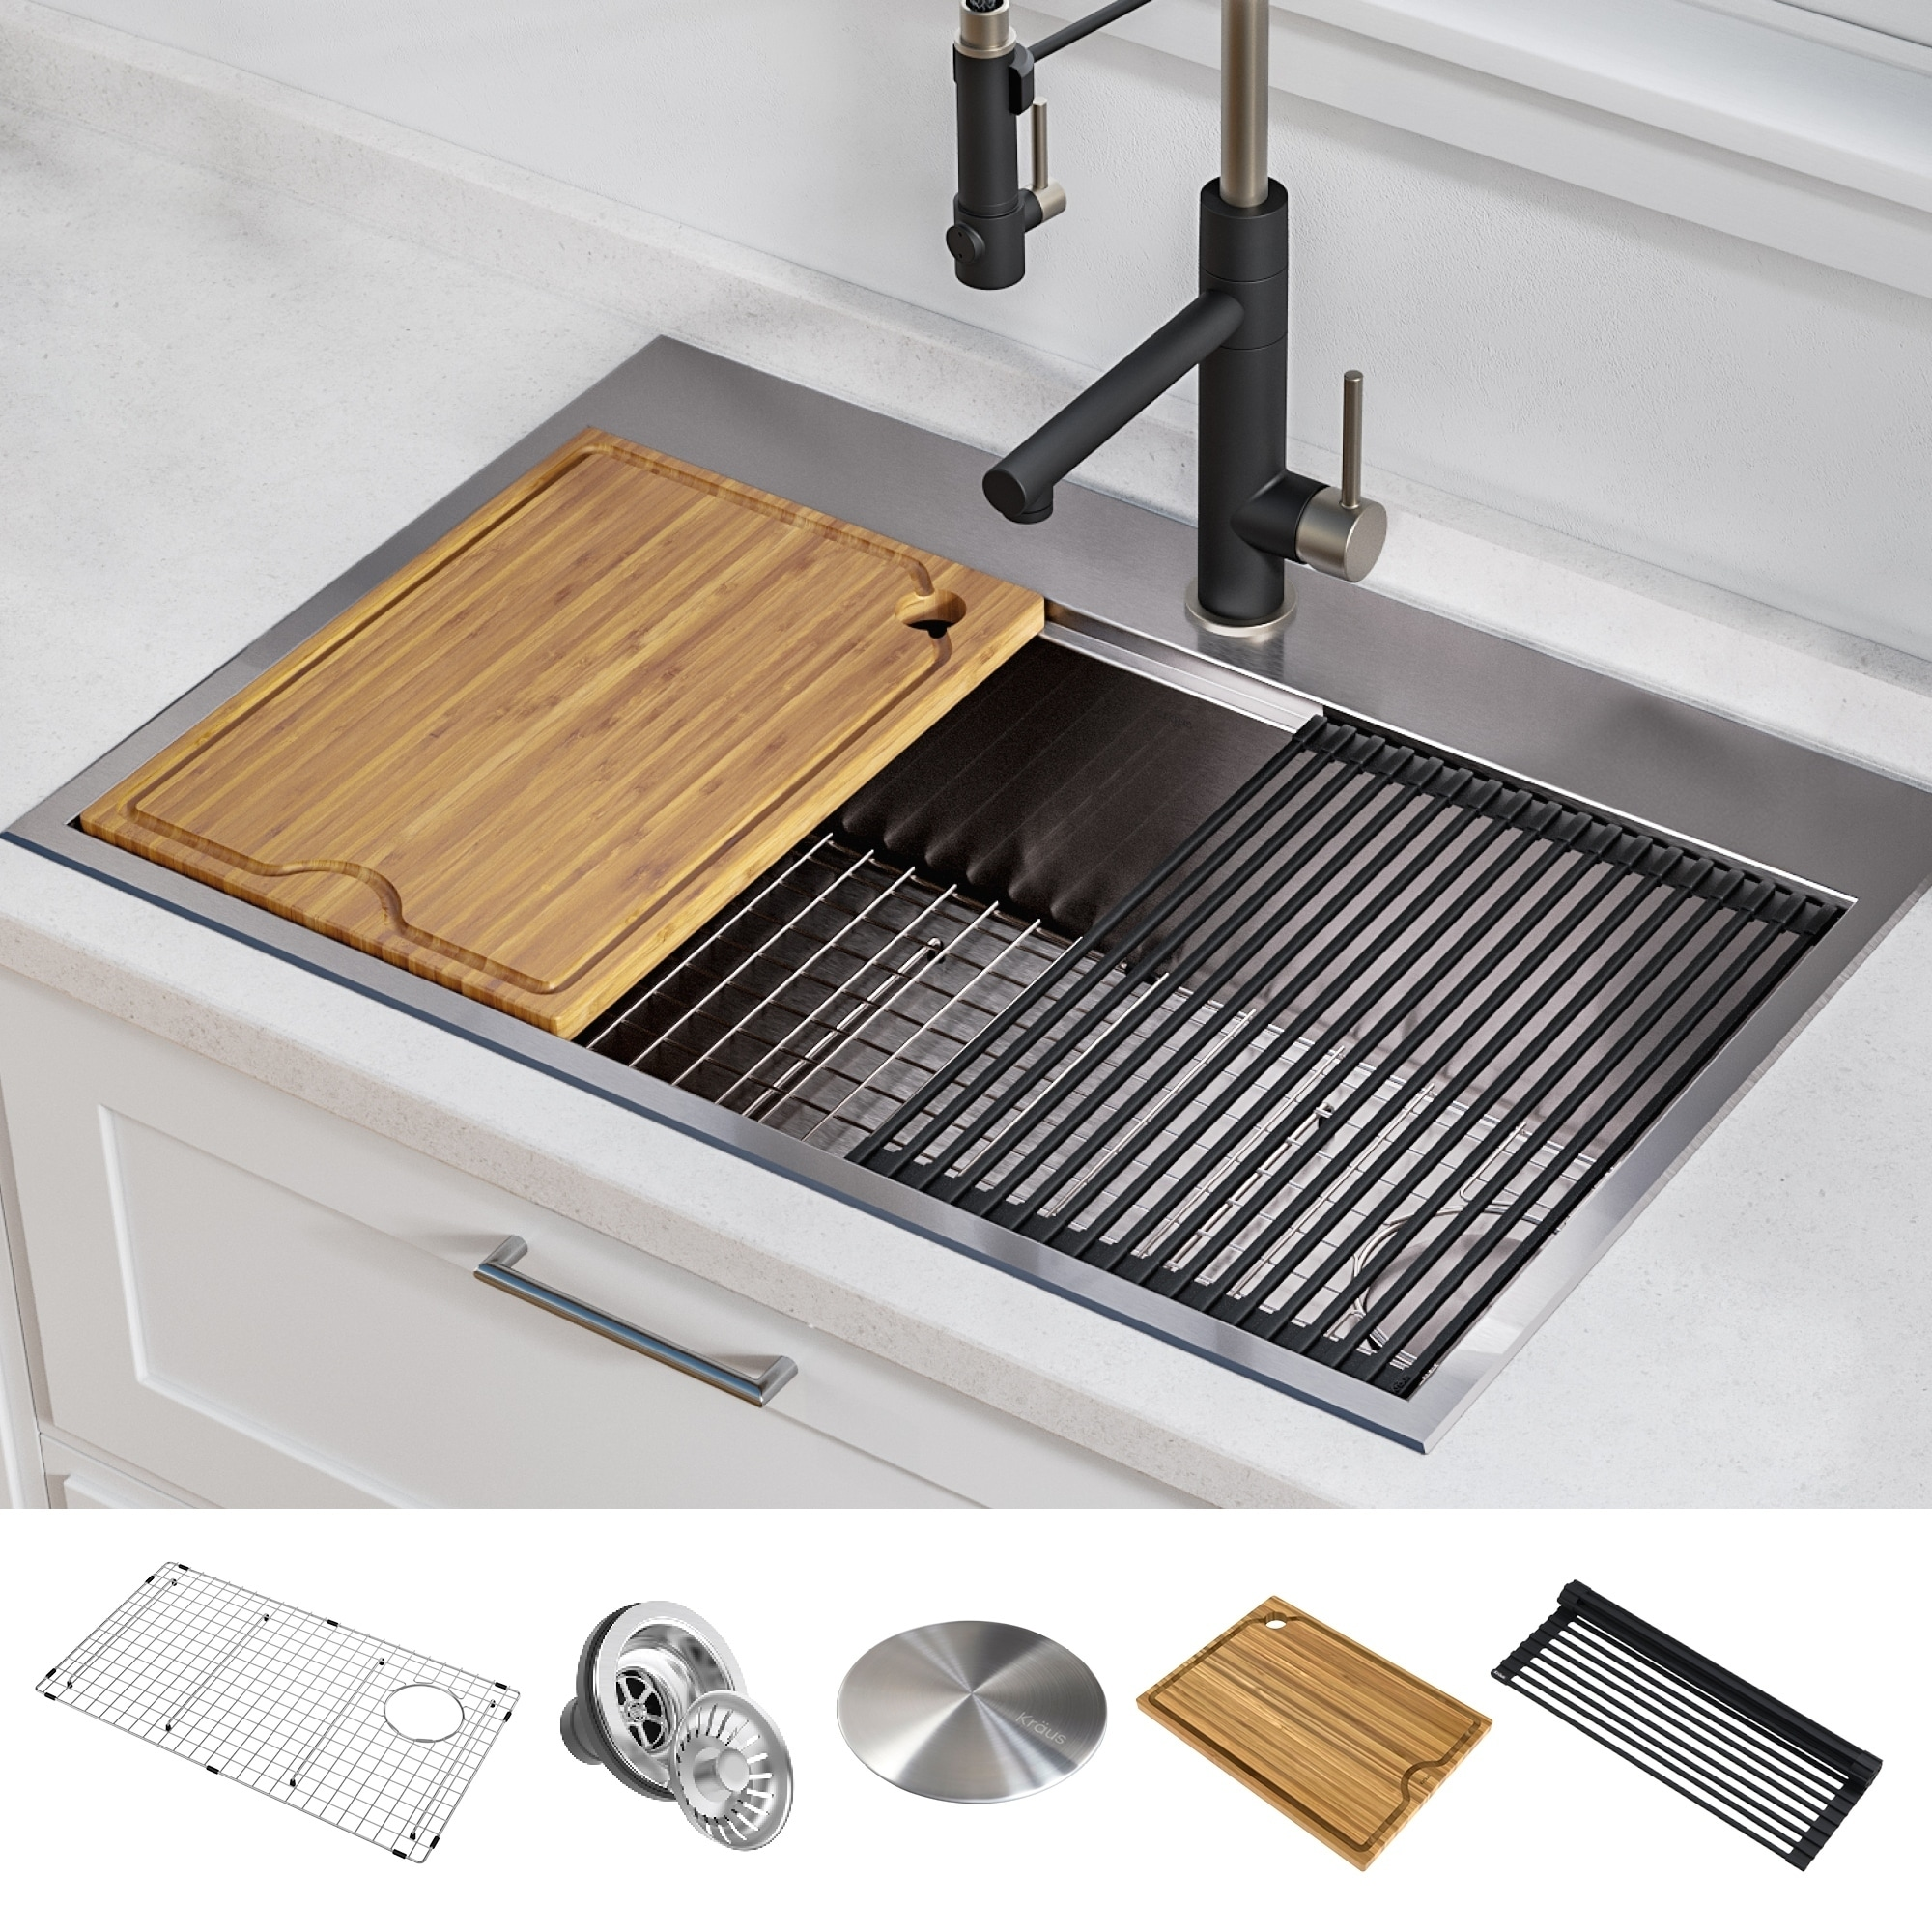 Swell Kraus Kore Workstation Drop In Stainless Steel Kitchen Sink Complete Home Design Collection Lindsey Bellcom